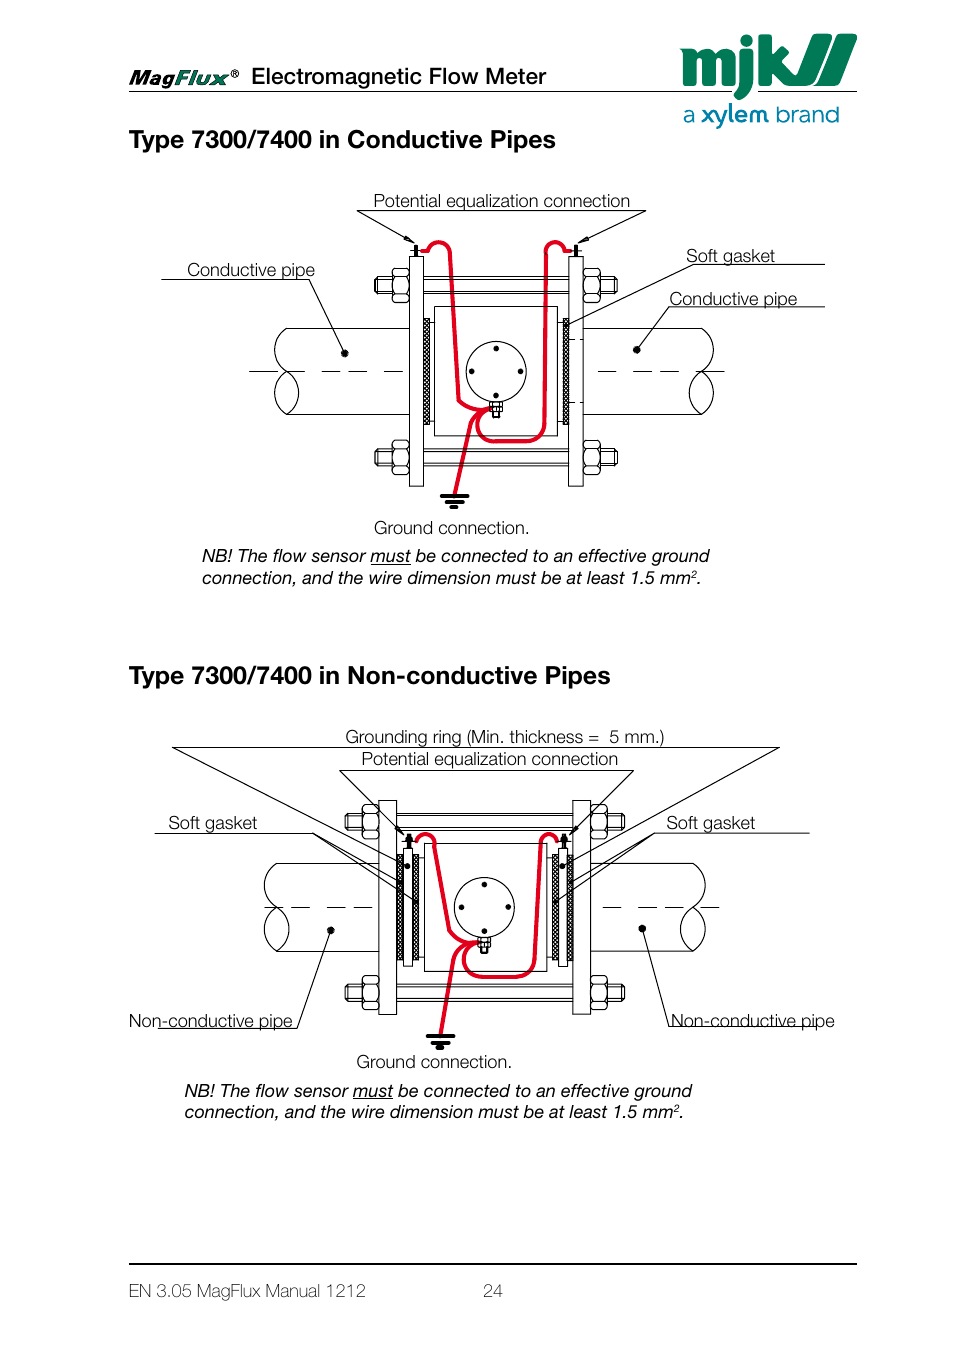 Electromagnetic Flow Meter Wiring Diagram Electrical Xylem Magflux Ct